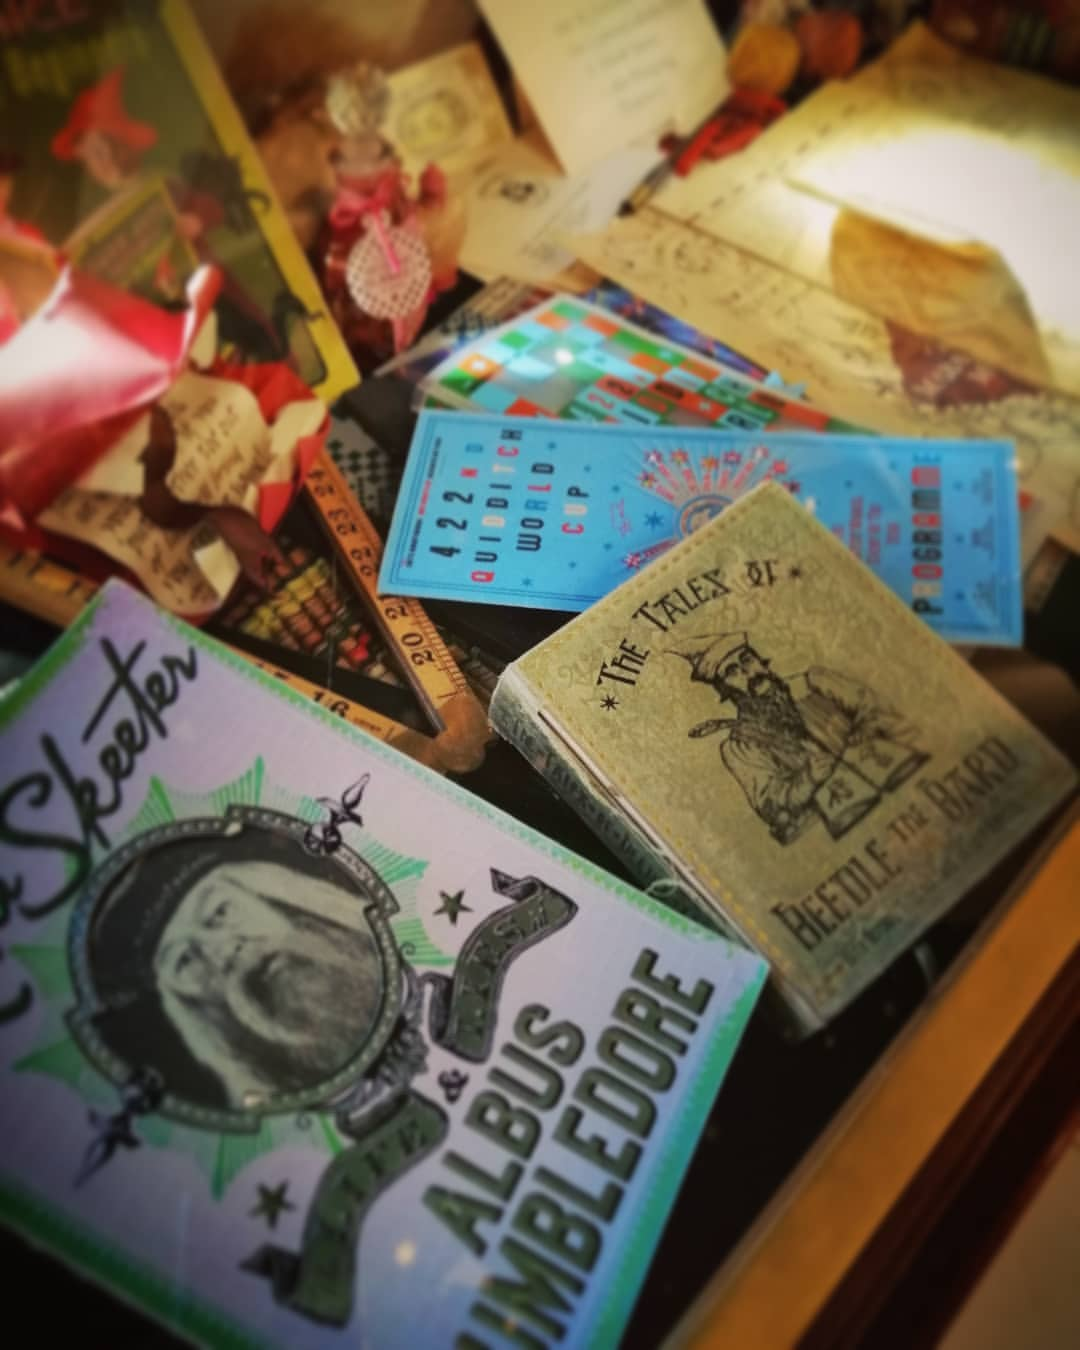 Surrounded by all these items, you can almost touch magic in the air in MinaLima's gallery.